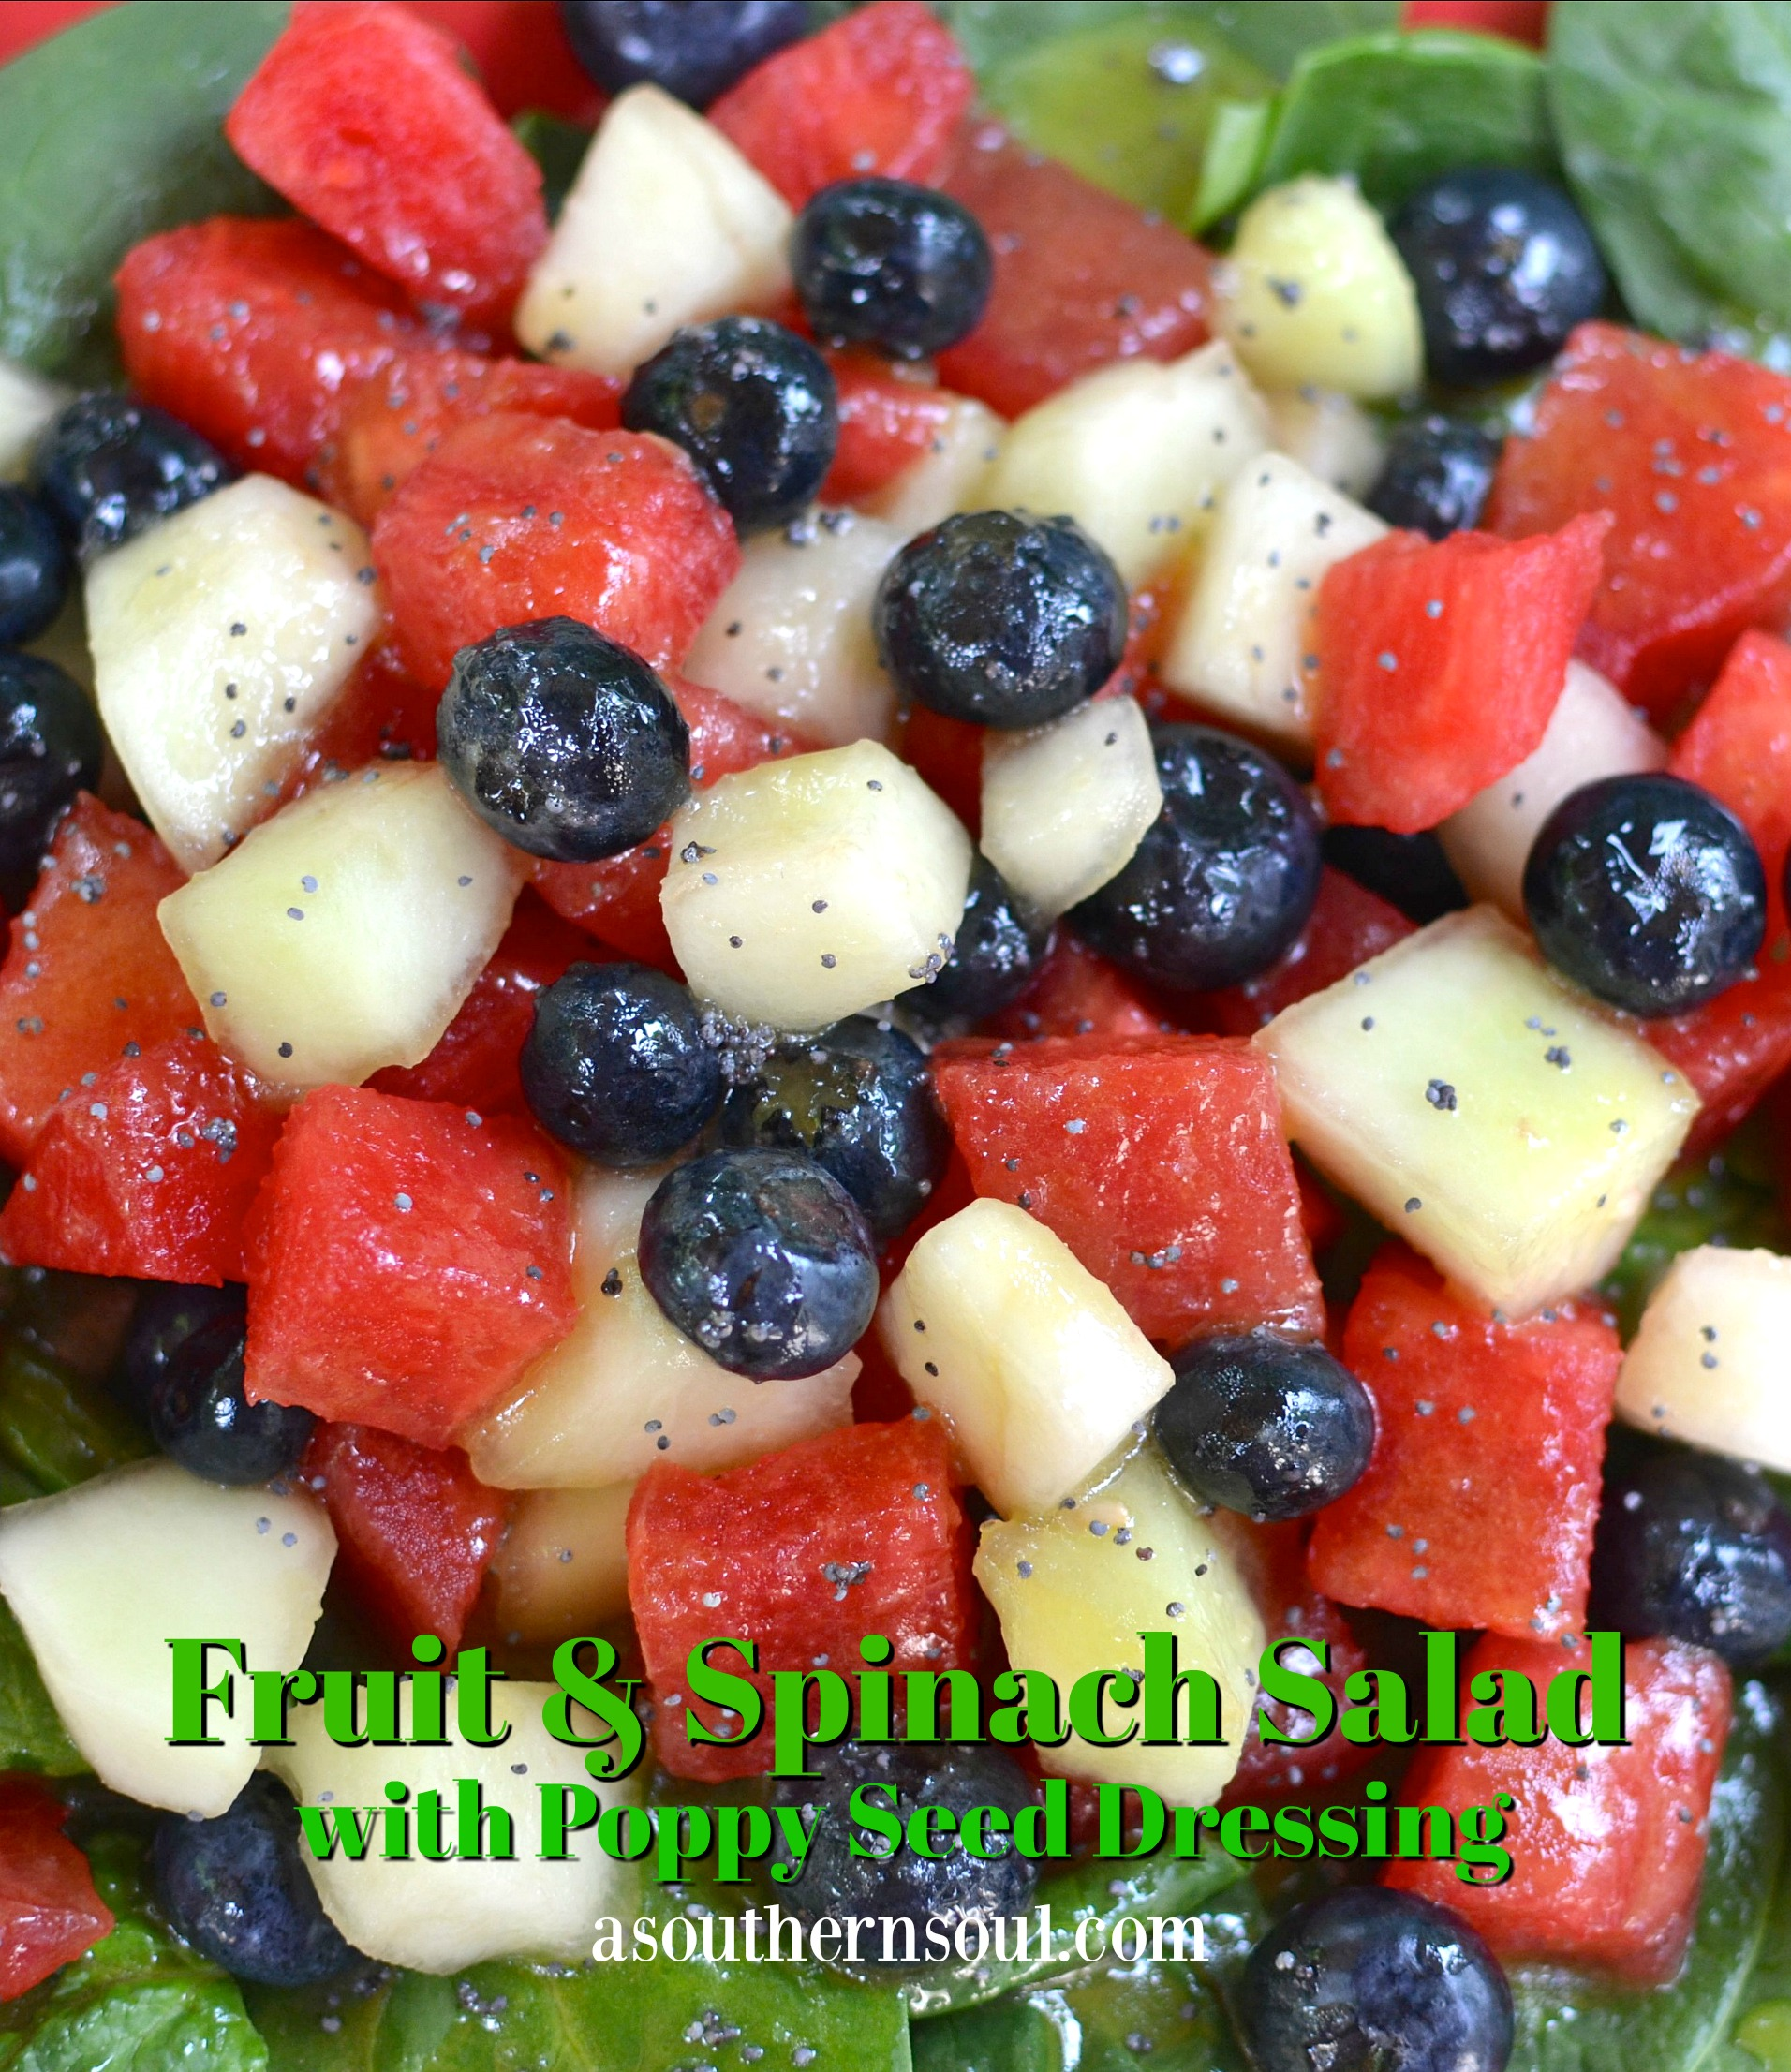 fruit & spinach with poppy seed dressing